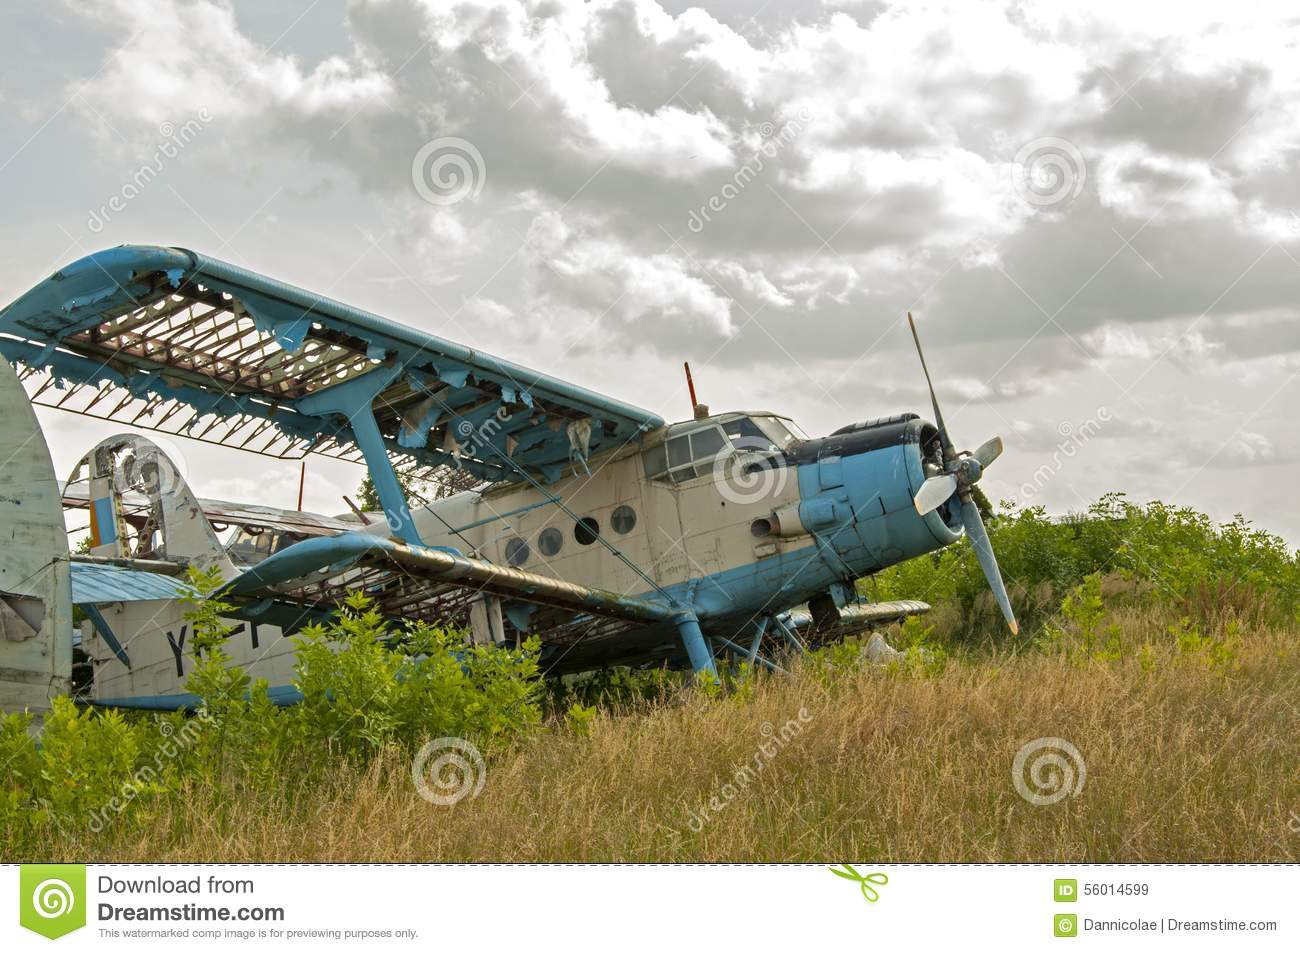 Winding Road Clipart Abandoned Old Plane Ru...